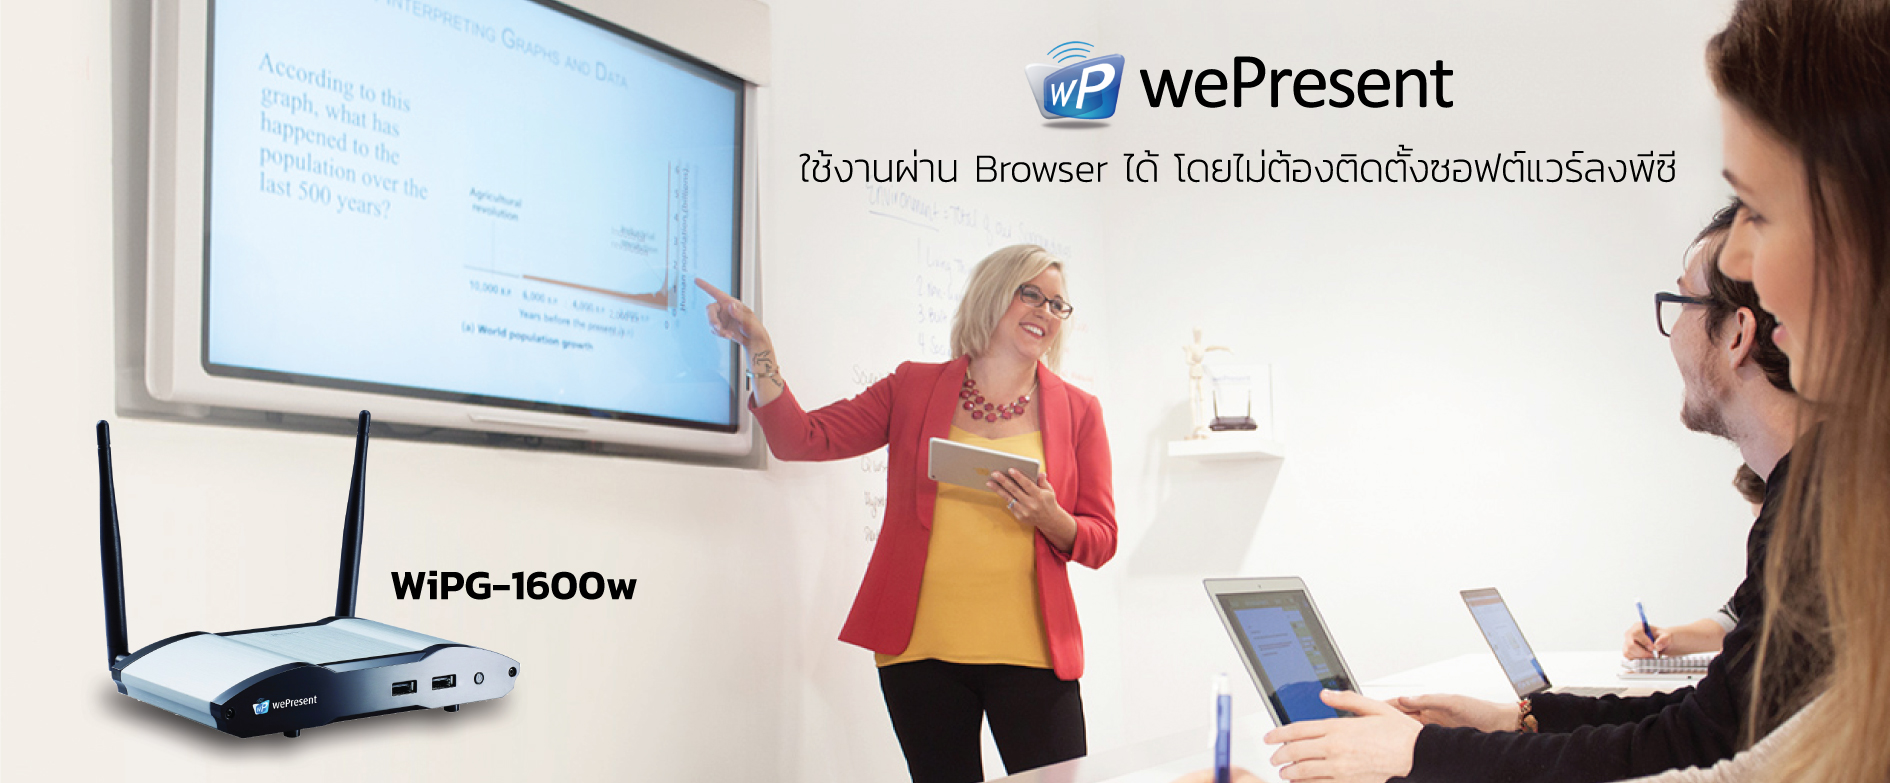 wePresent wireless presentation